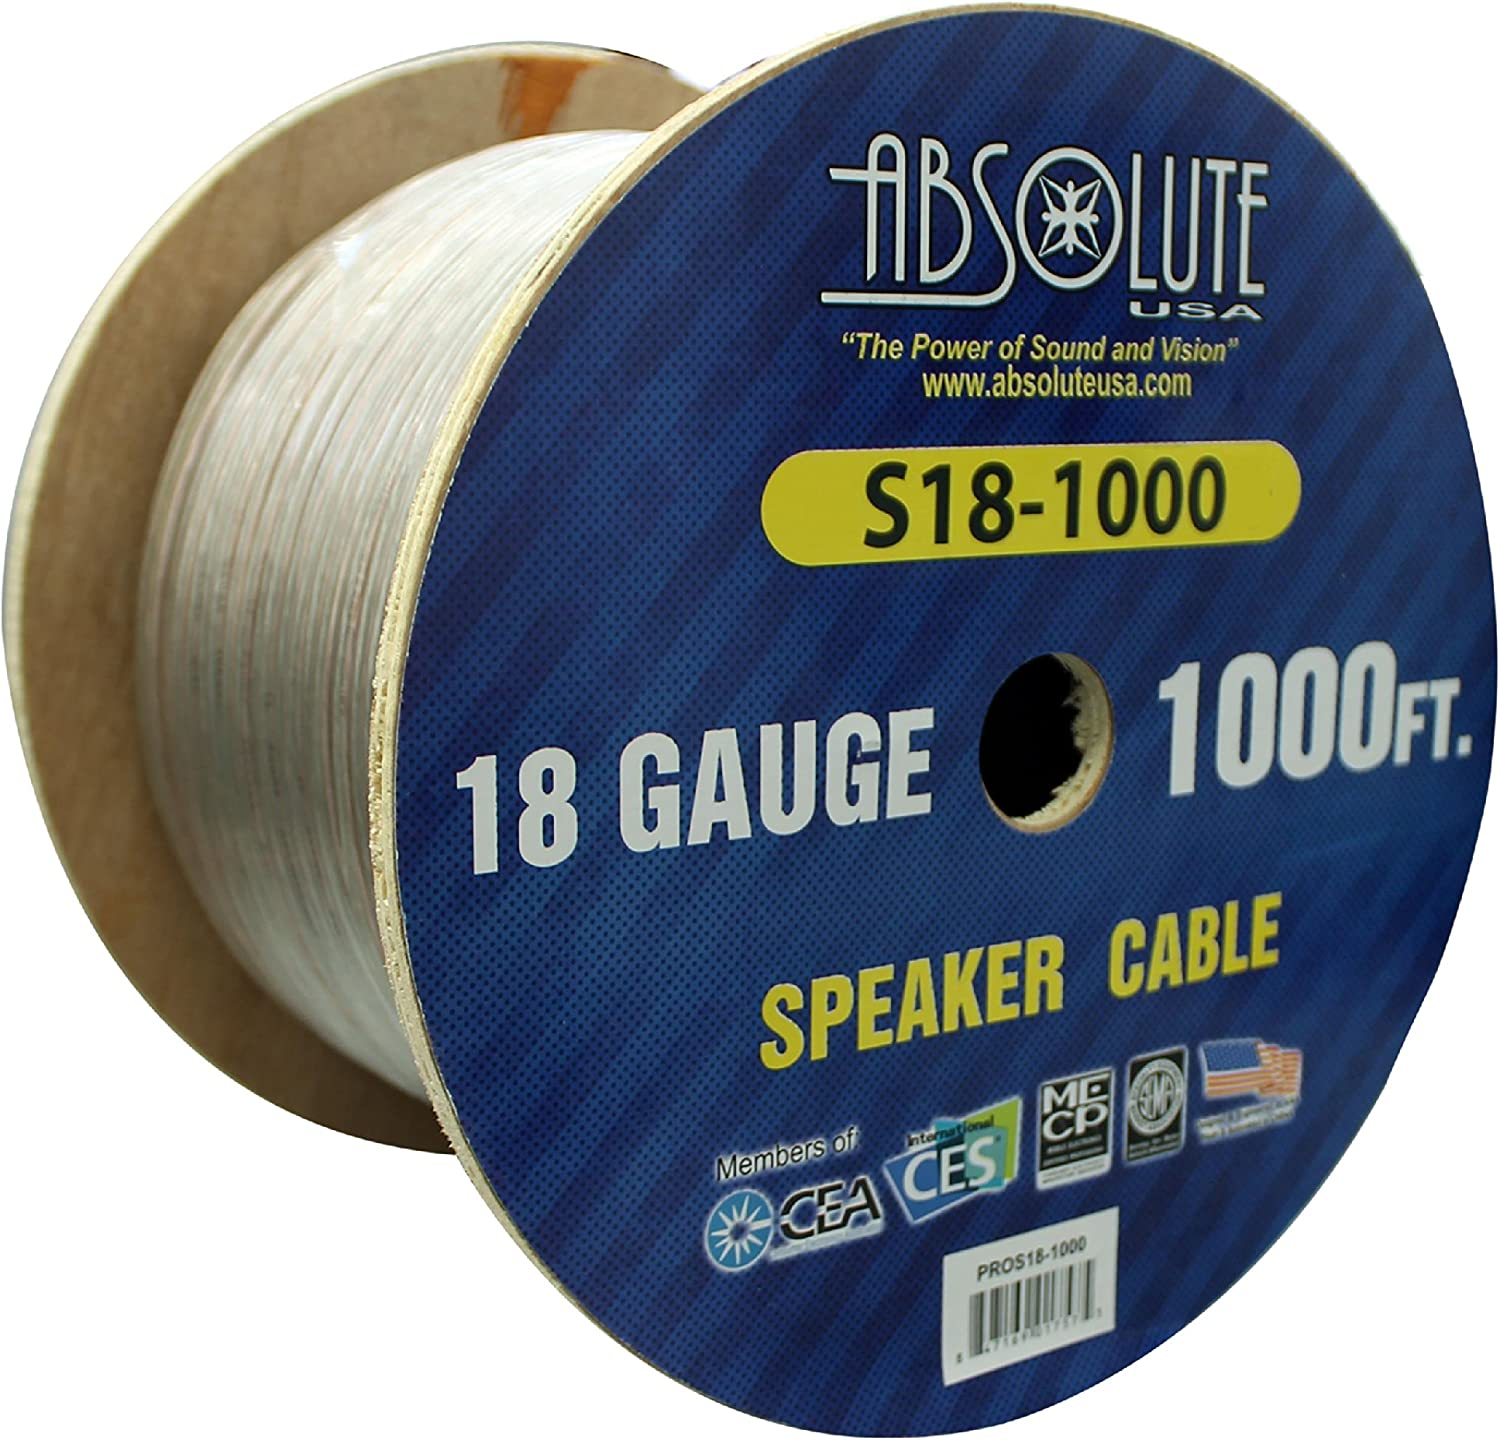 Absolute USA S181000 1000-Feet 18 Gauge Spool Speaker Wire